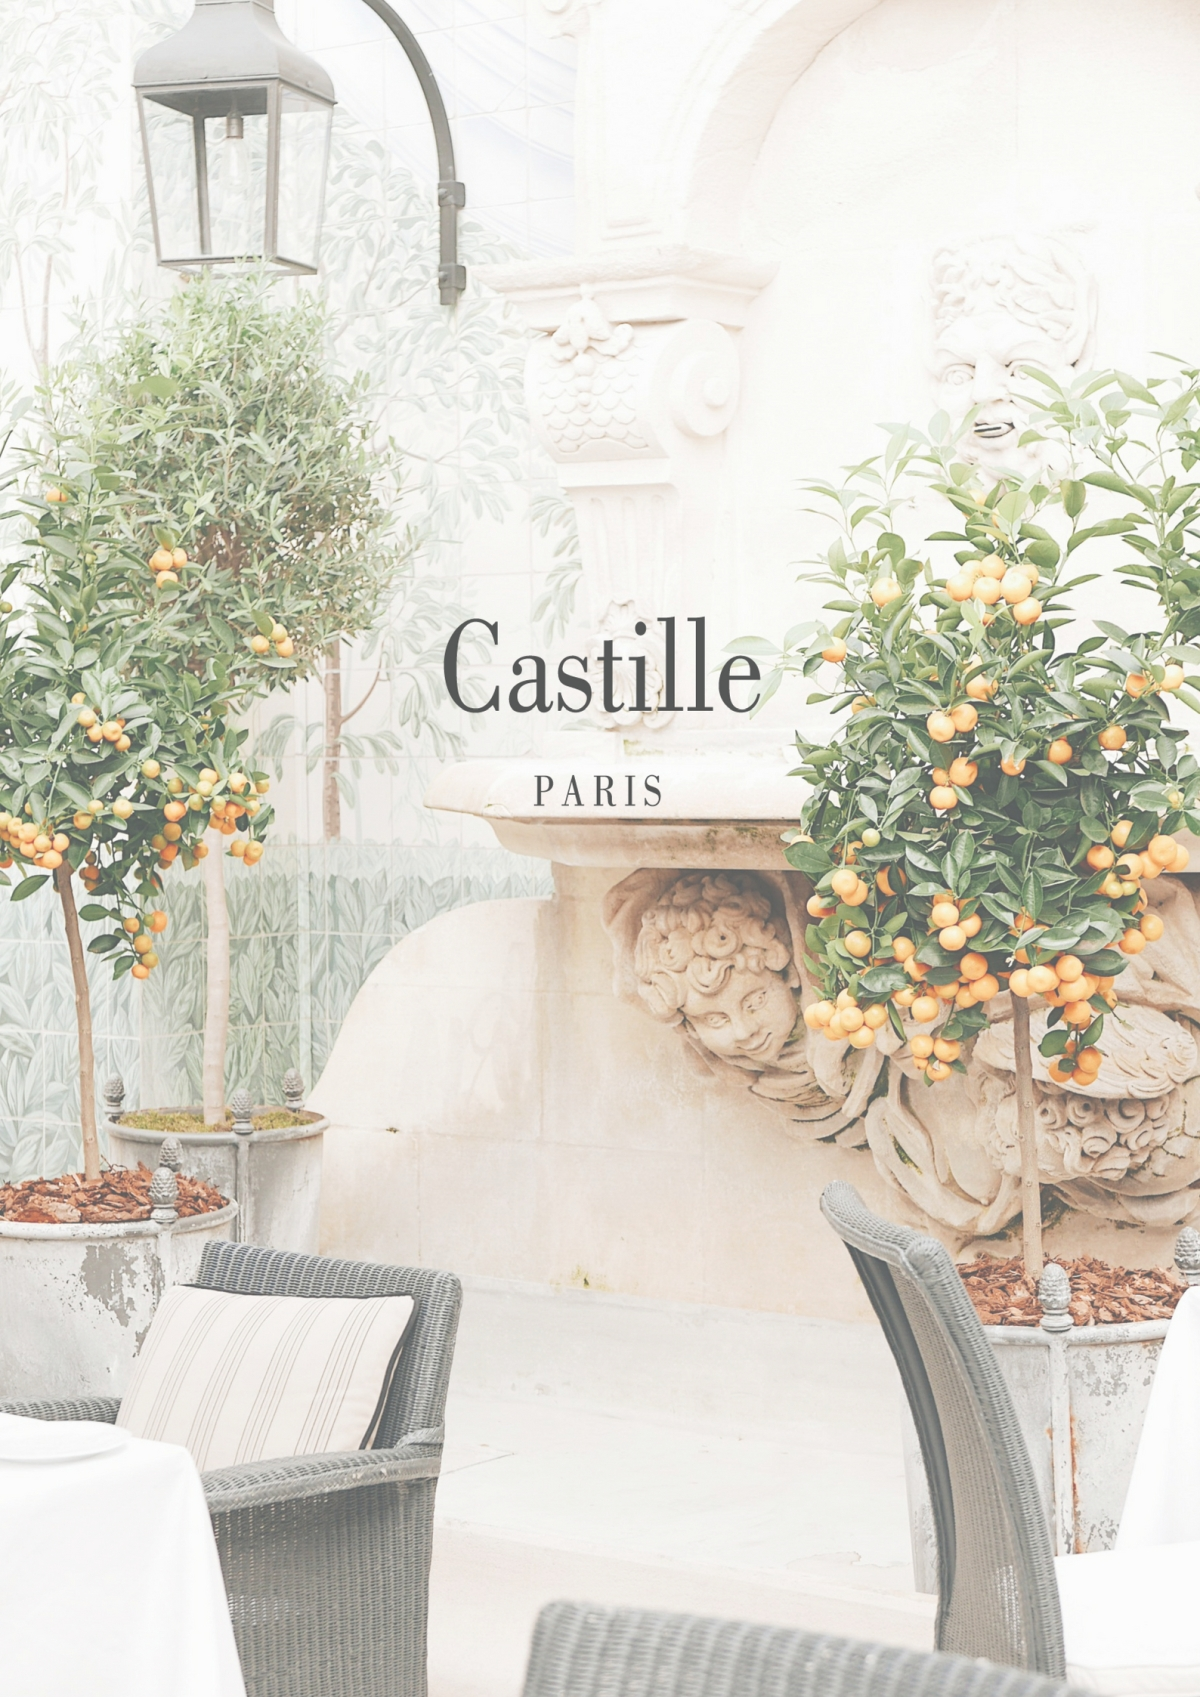 Stay in Paris: Castille Paris